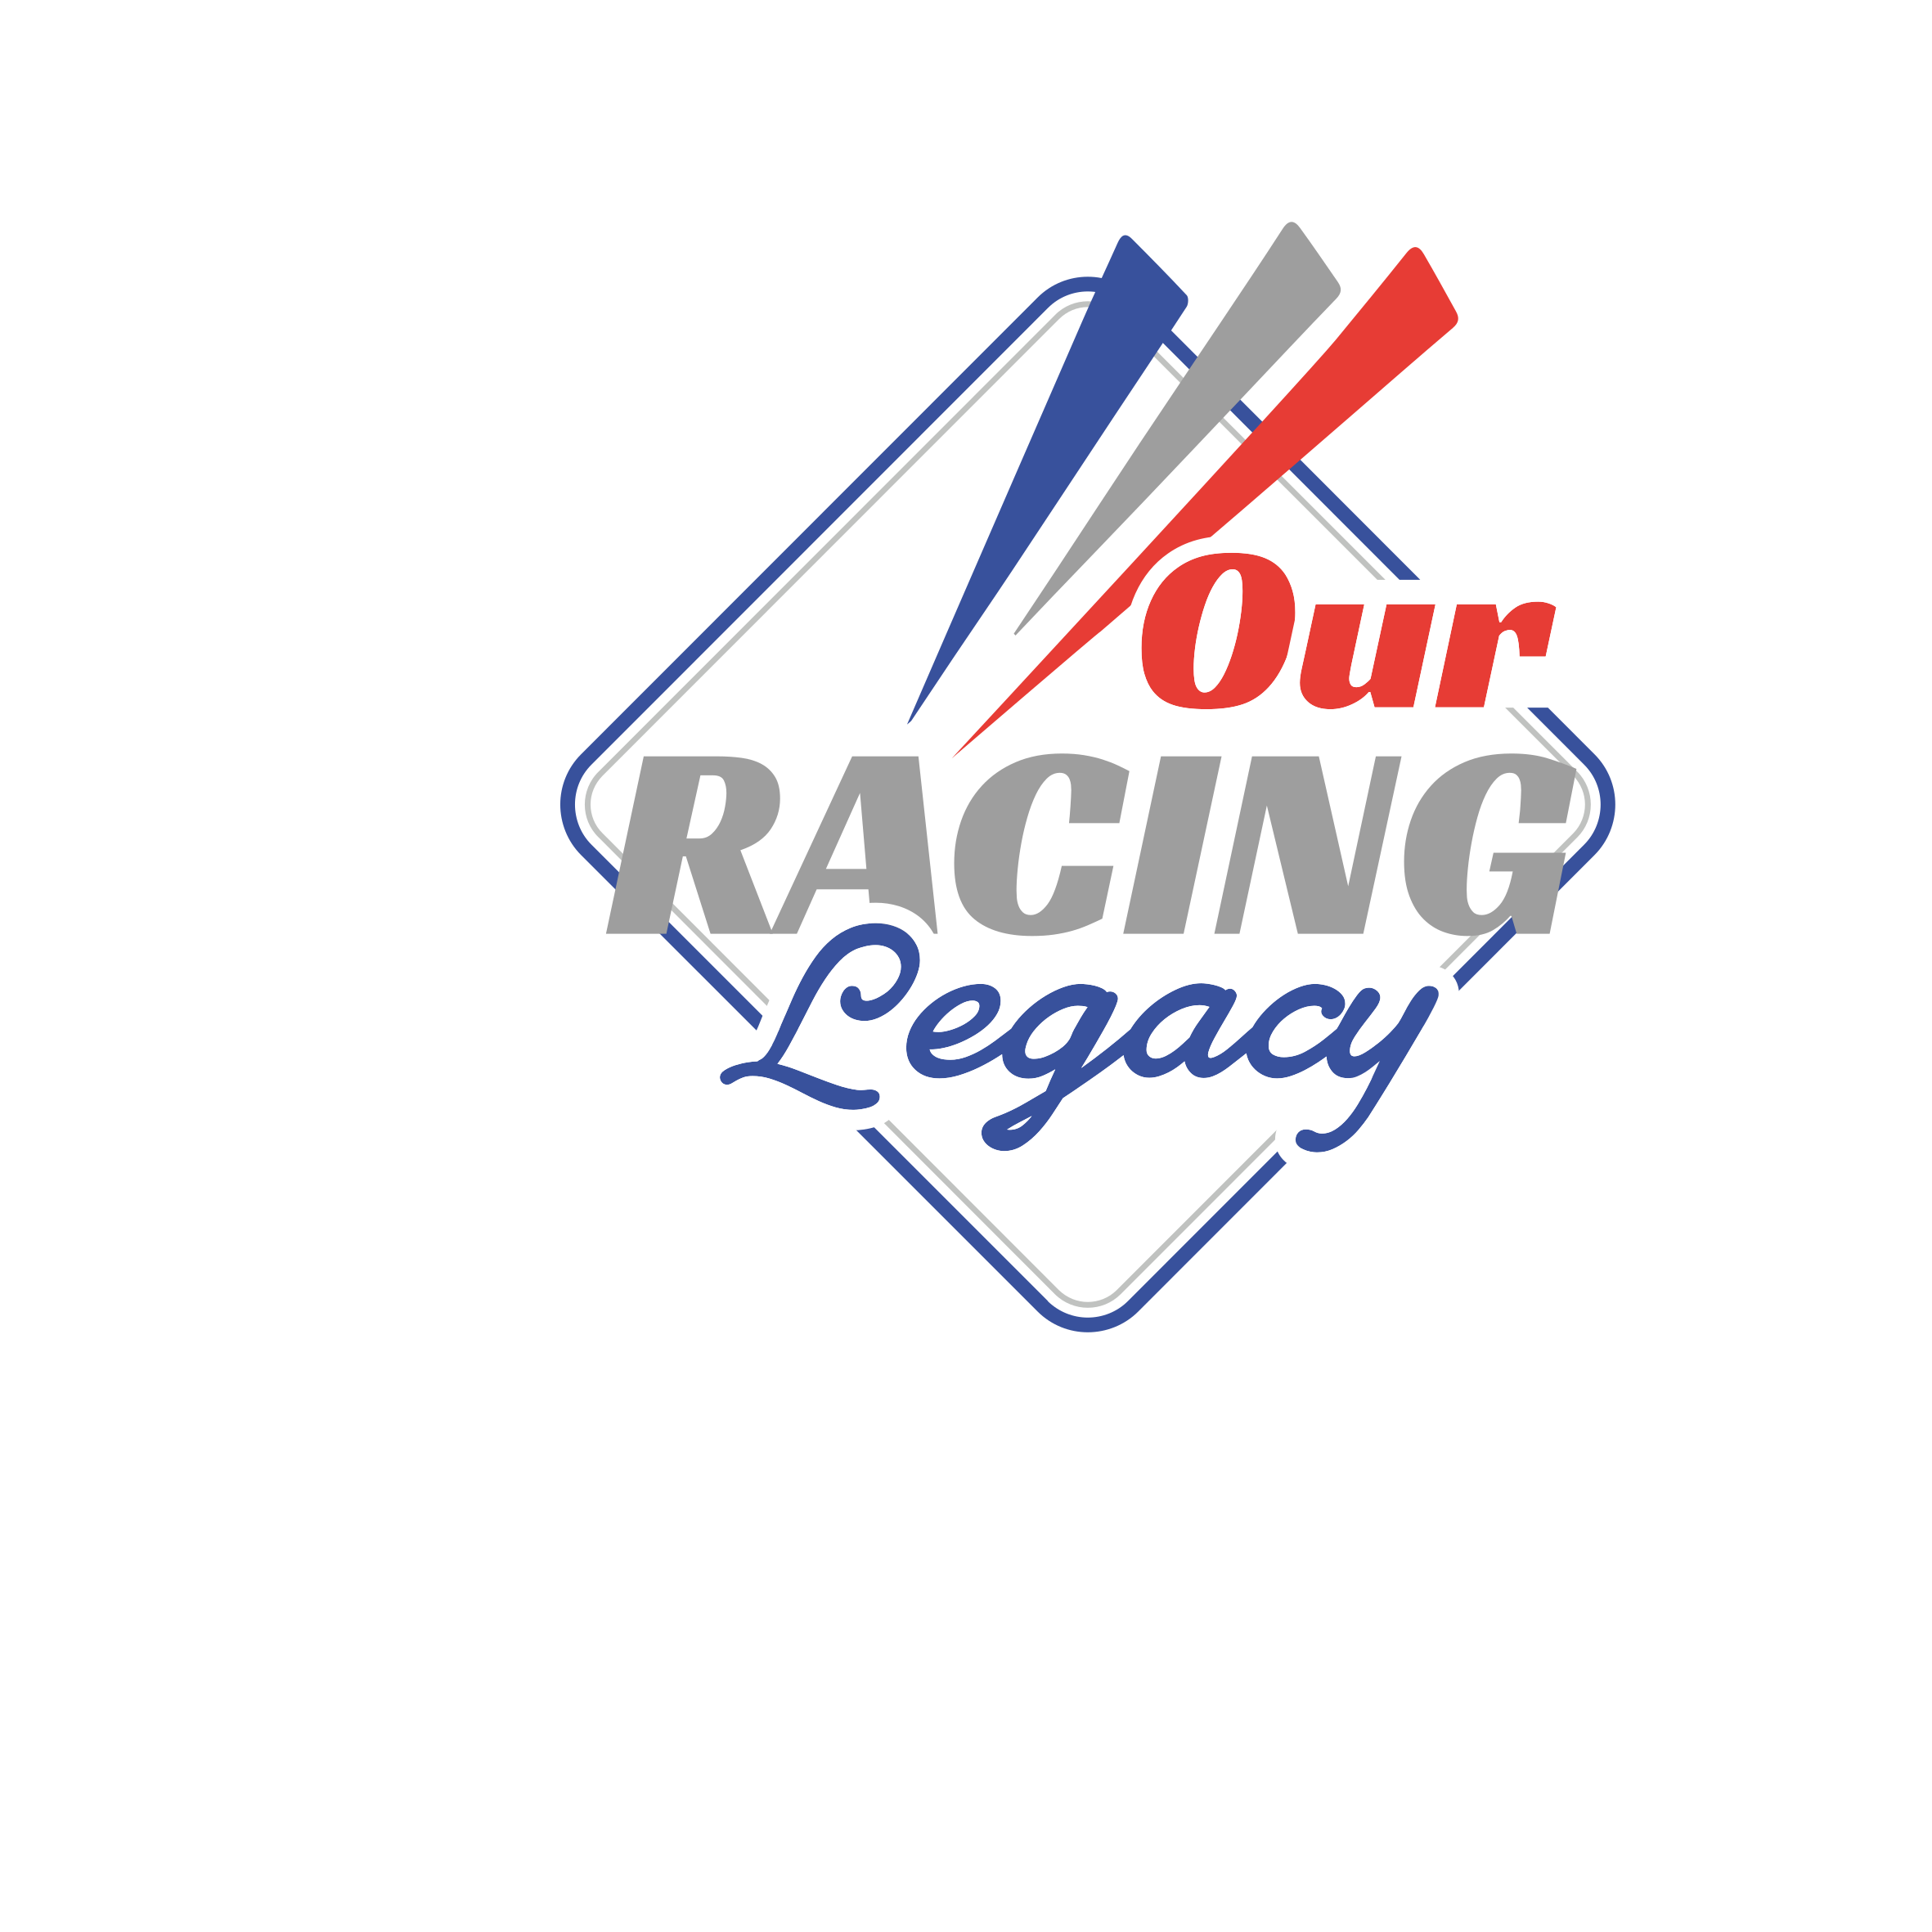 Our Racing Legacy